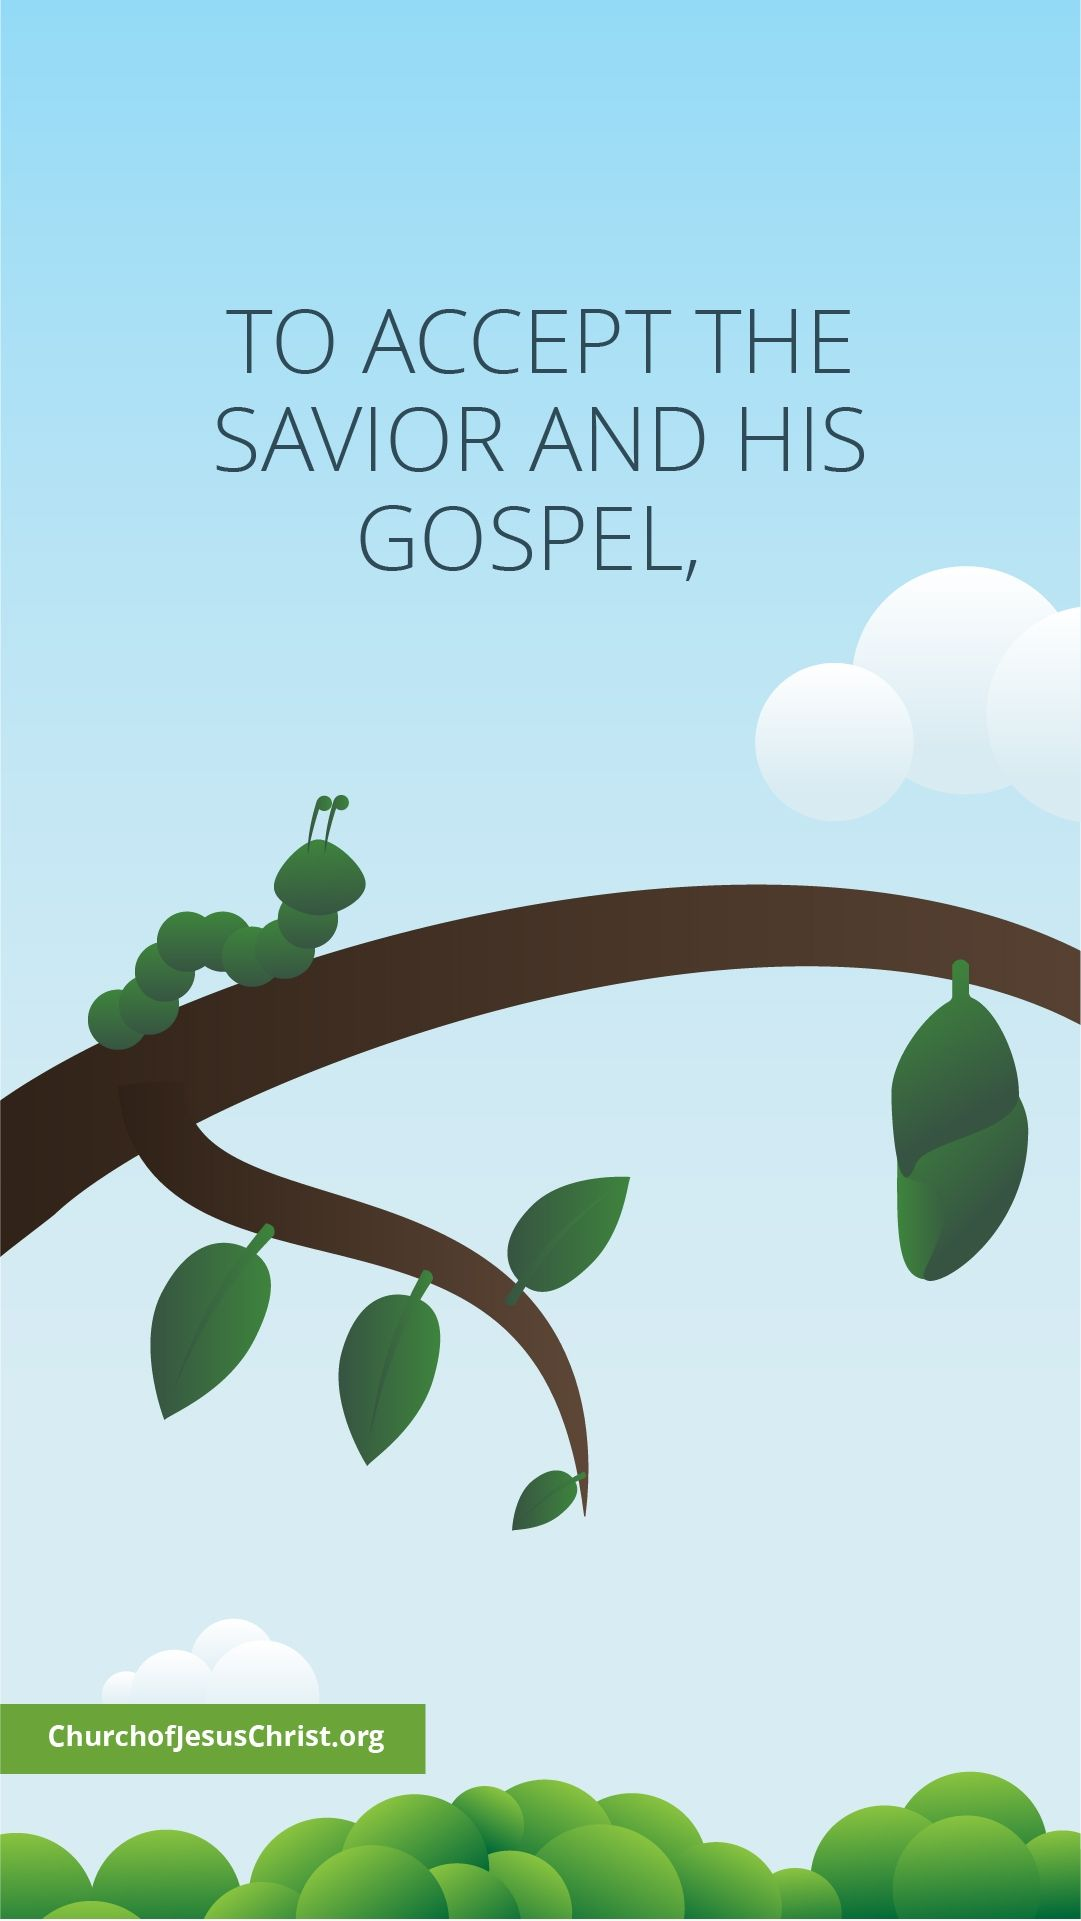 First of a two-part meme of a caterpillar on a branch, paired with a thought: To accept the Savior...